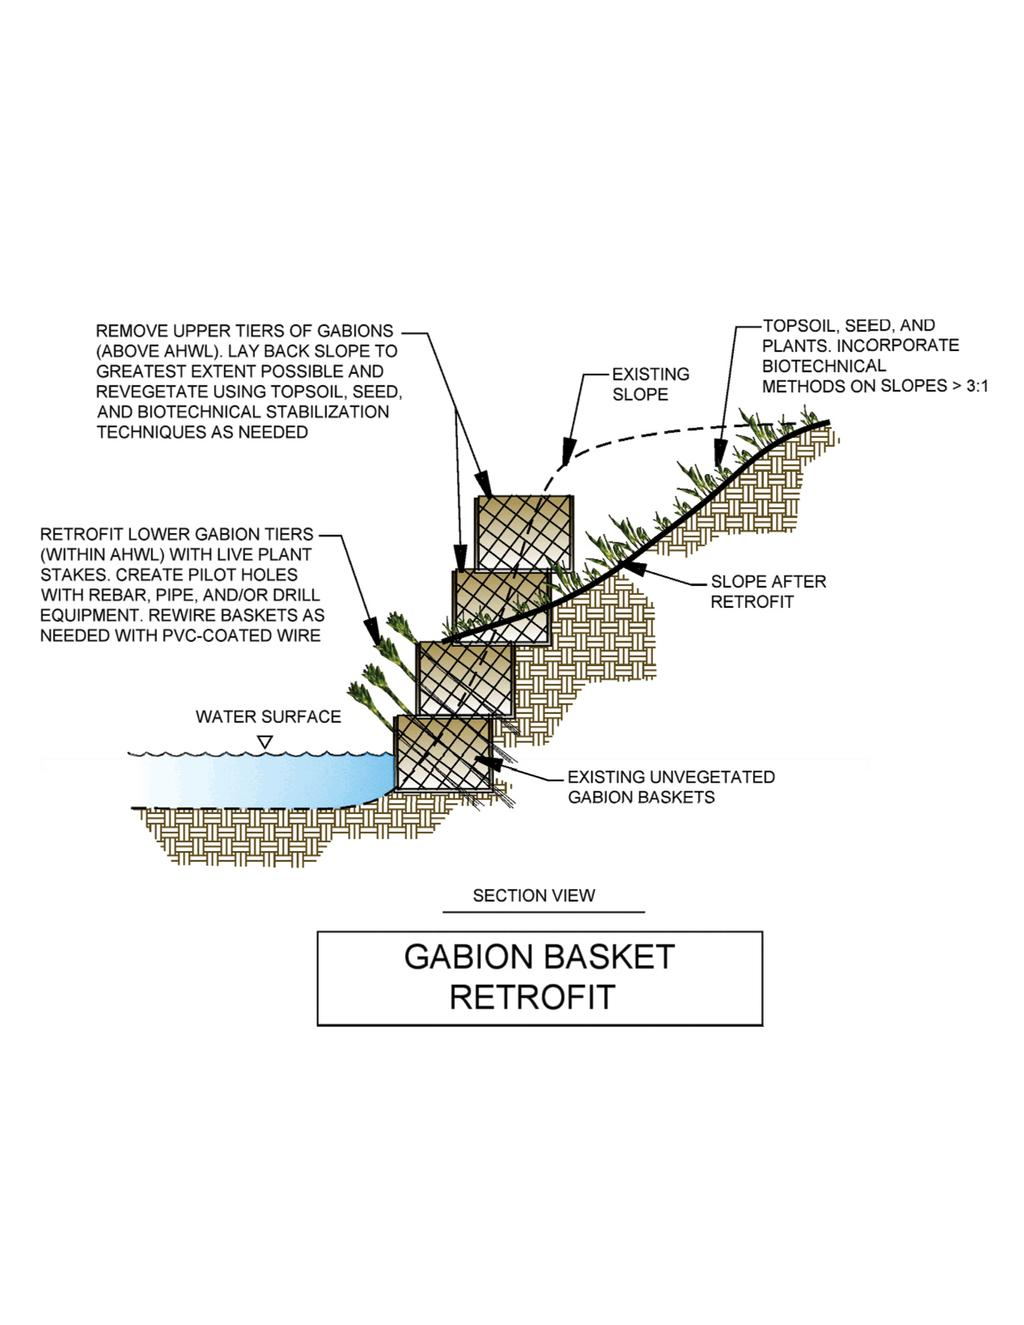 Drawing 13. Gabion basket retrofit.